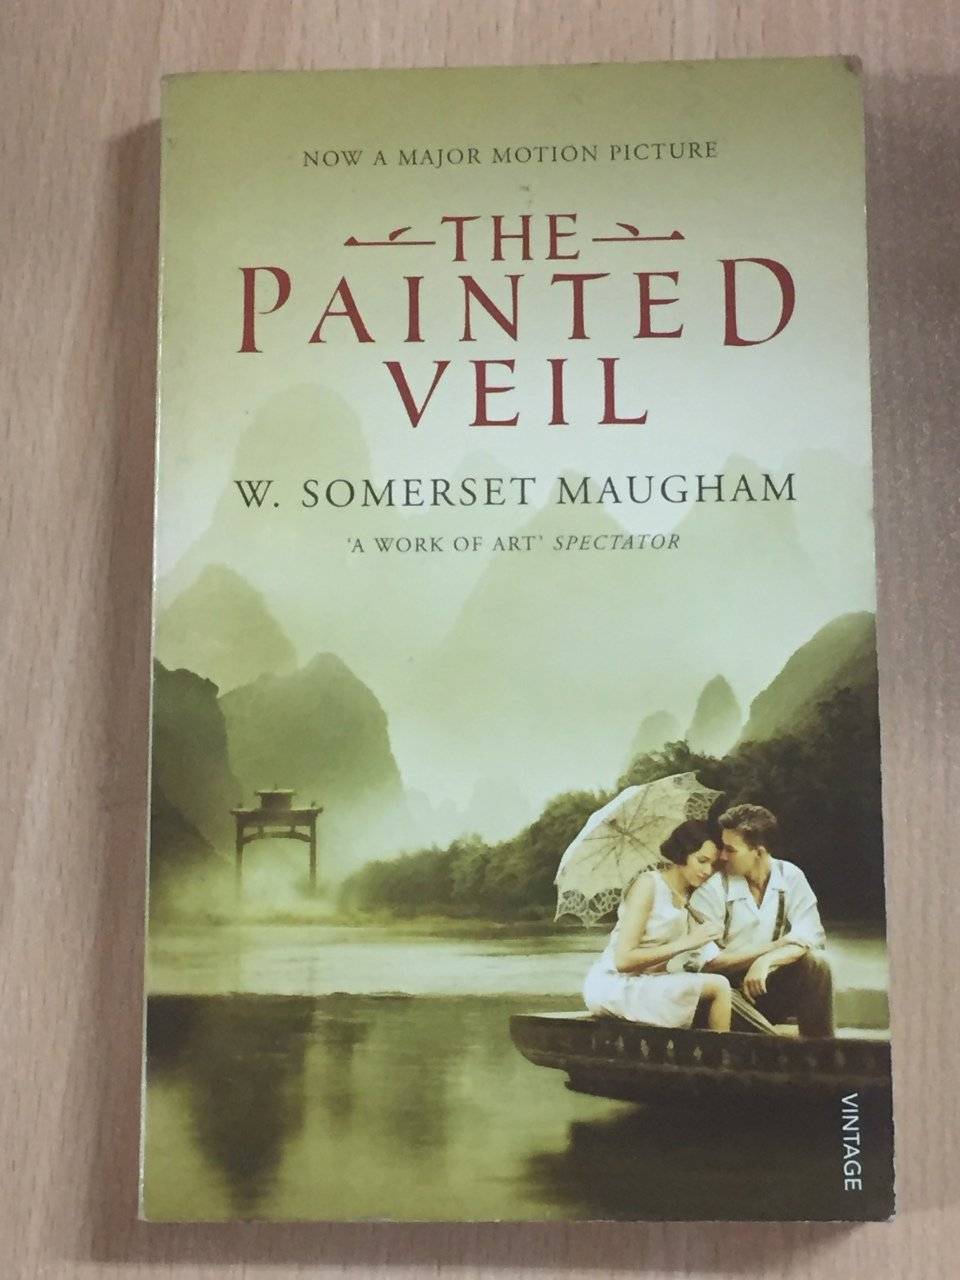 the painted veil a contextual analysis The painted veil release date: december 20, 2006 (ny, la top 25 markets: december 29 wider release: january 5, 2007 wider release: january 12 based on the classic novel by w somerset maugham, the painted veil is a love story set in the 1920s that tells the story of a young english.